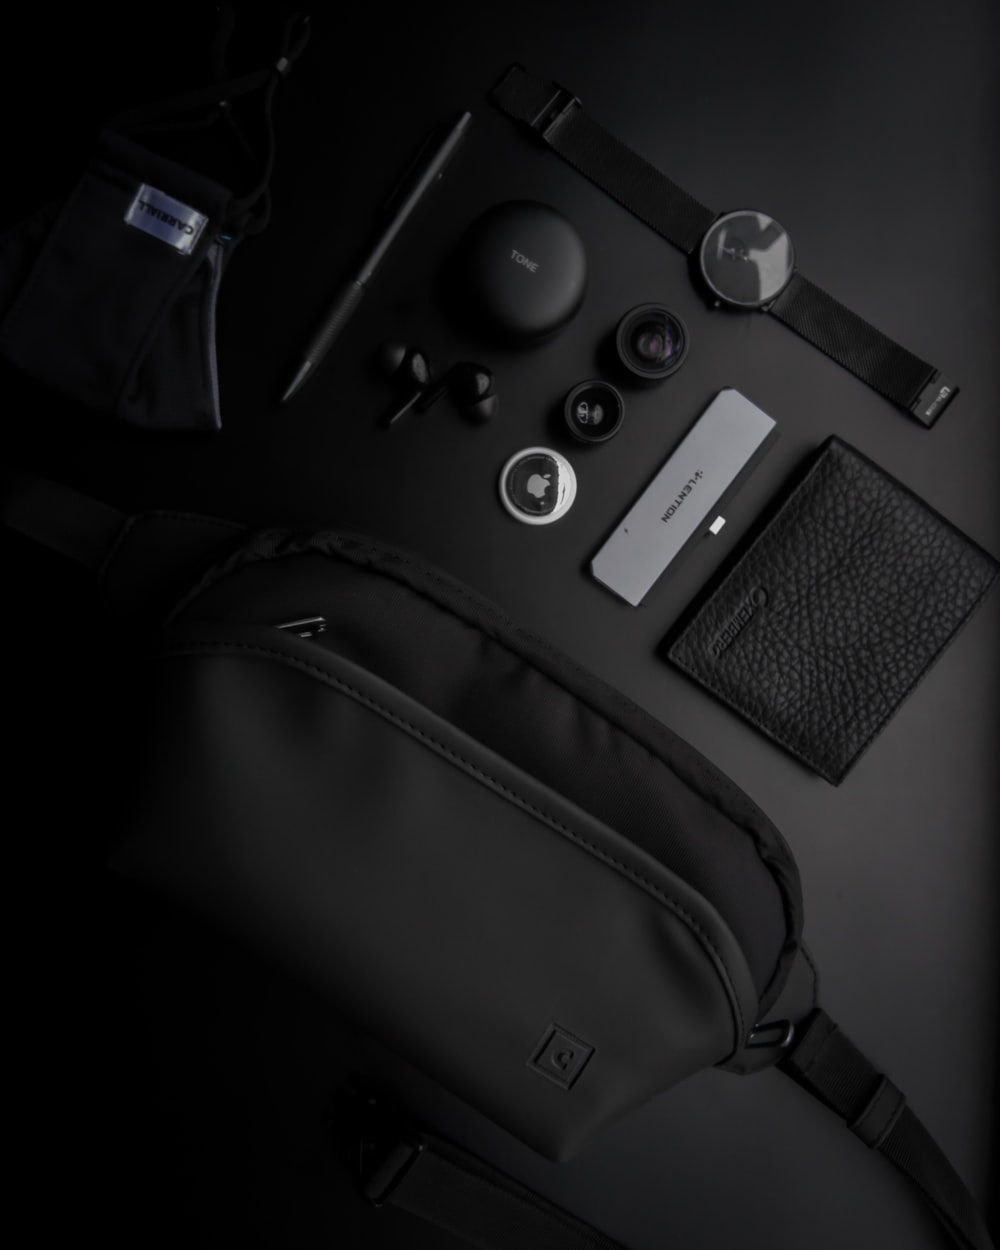 black and silver camera on black leather bag